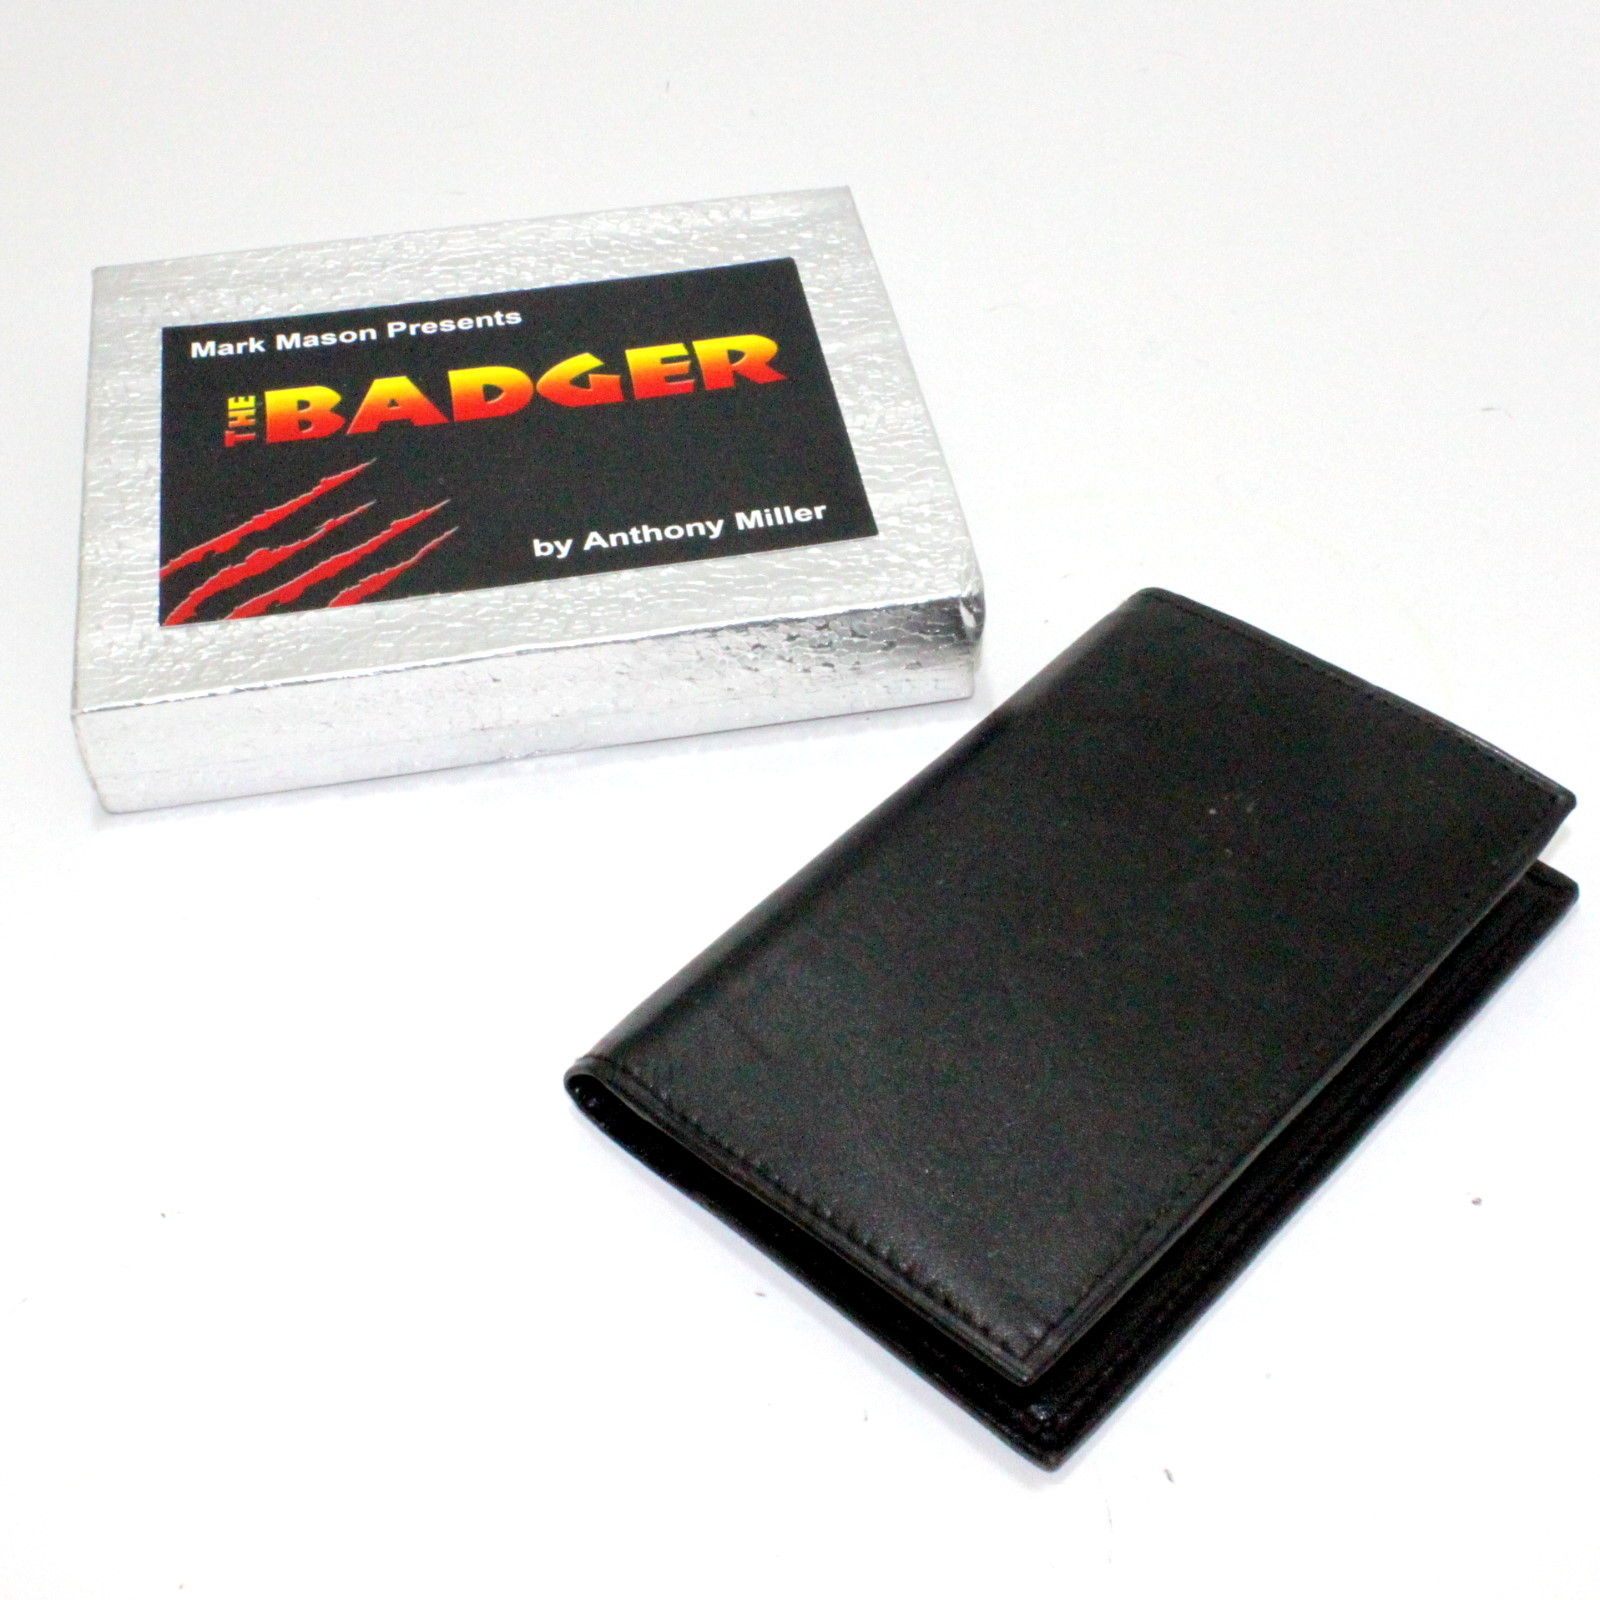 The Badger Wallet by Anthony Miller